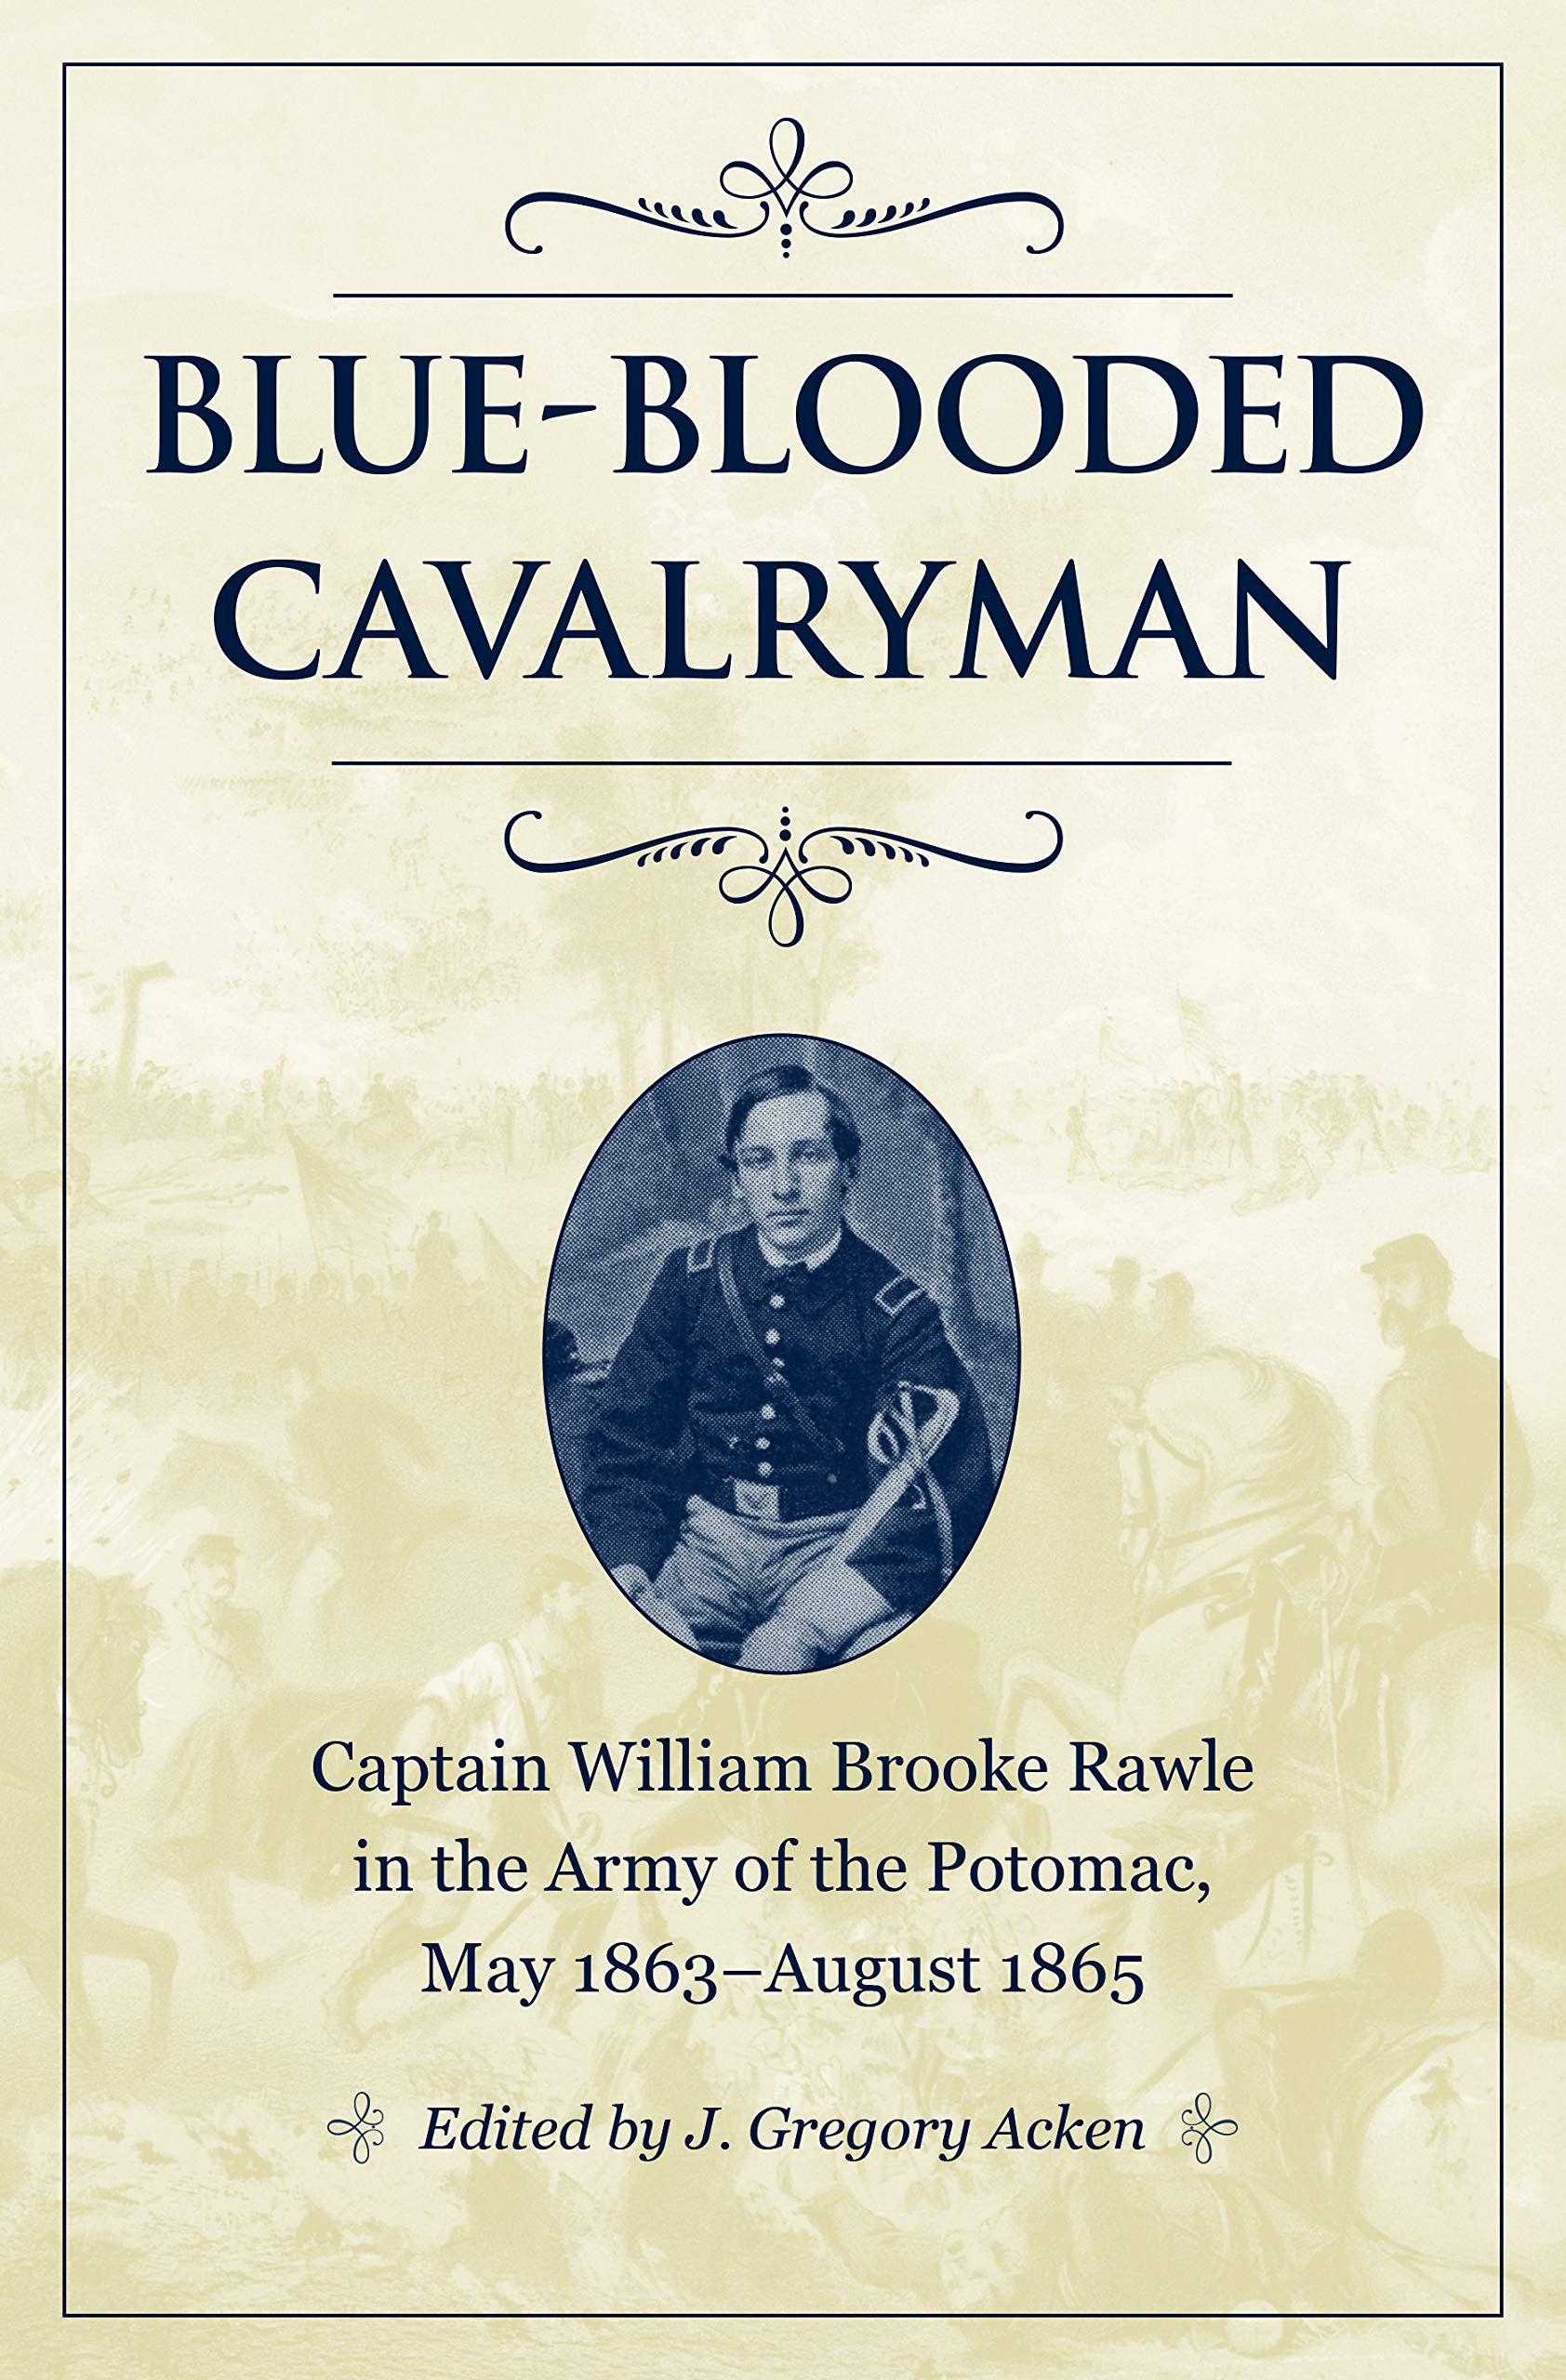 book cover art showing title and small portrait of soldier seated